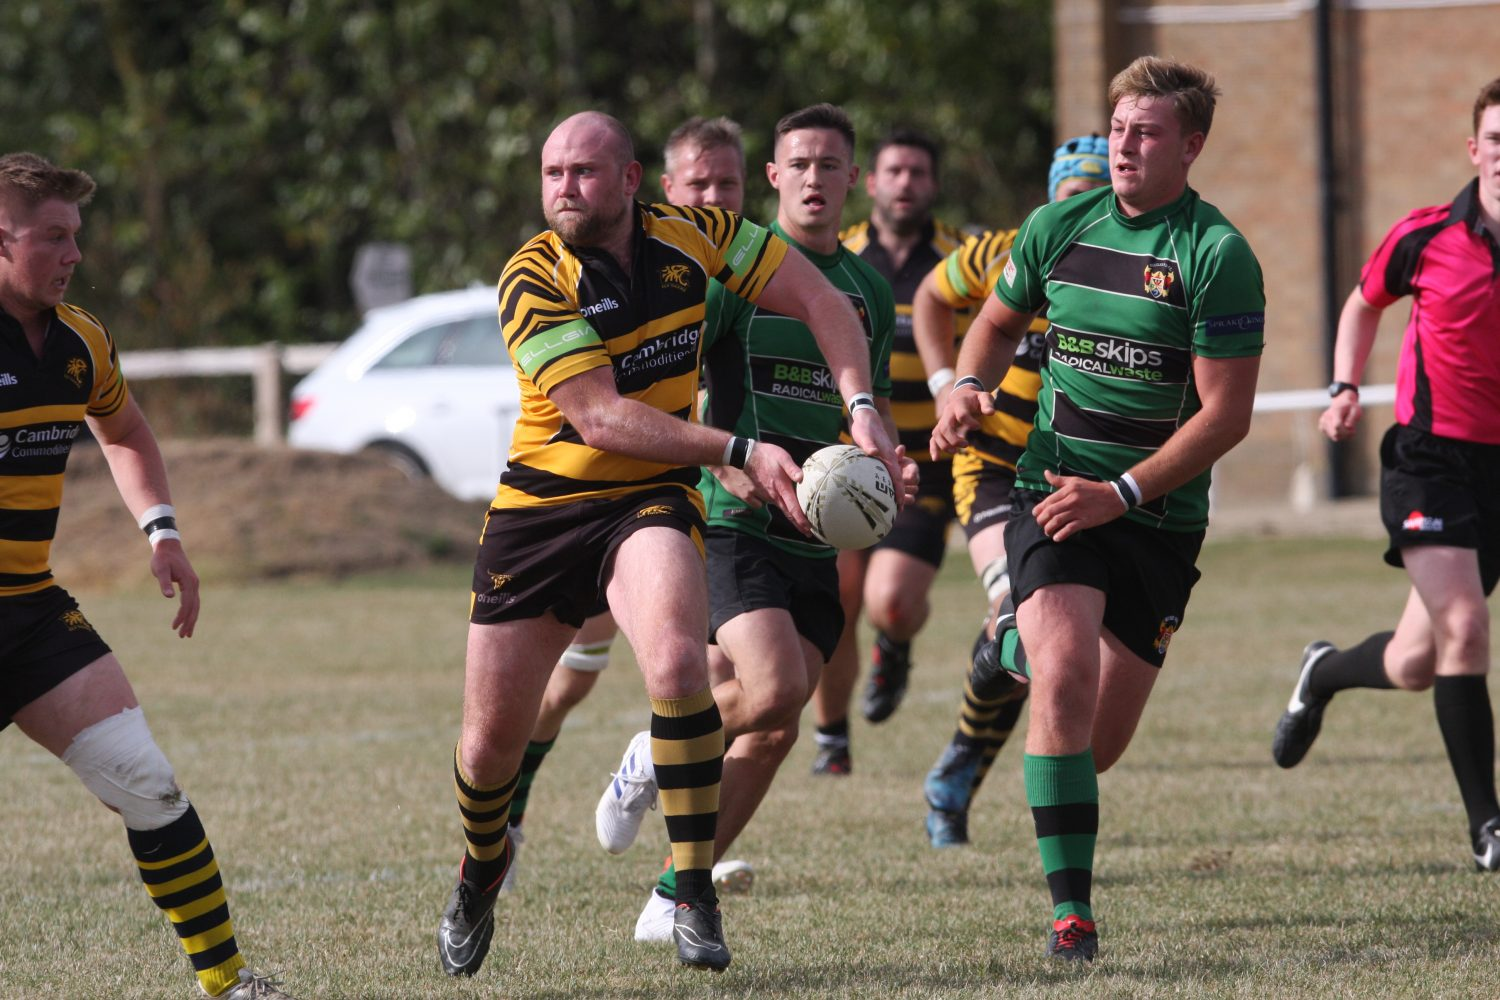 Ely Tigers v Beccles Match Report